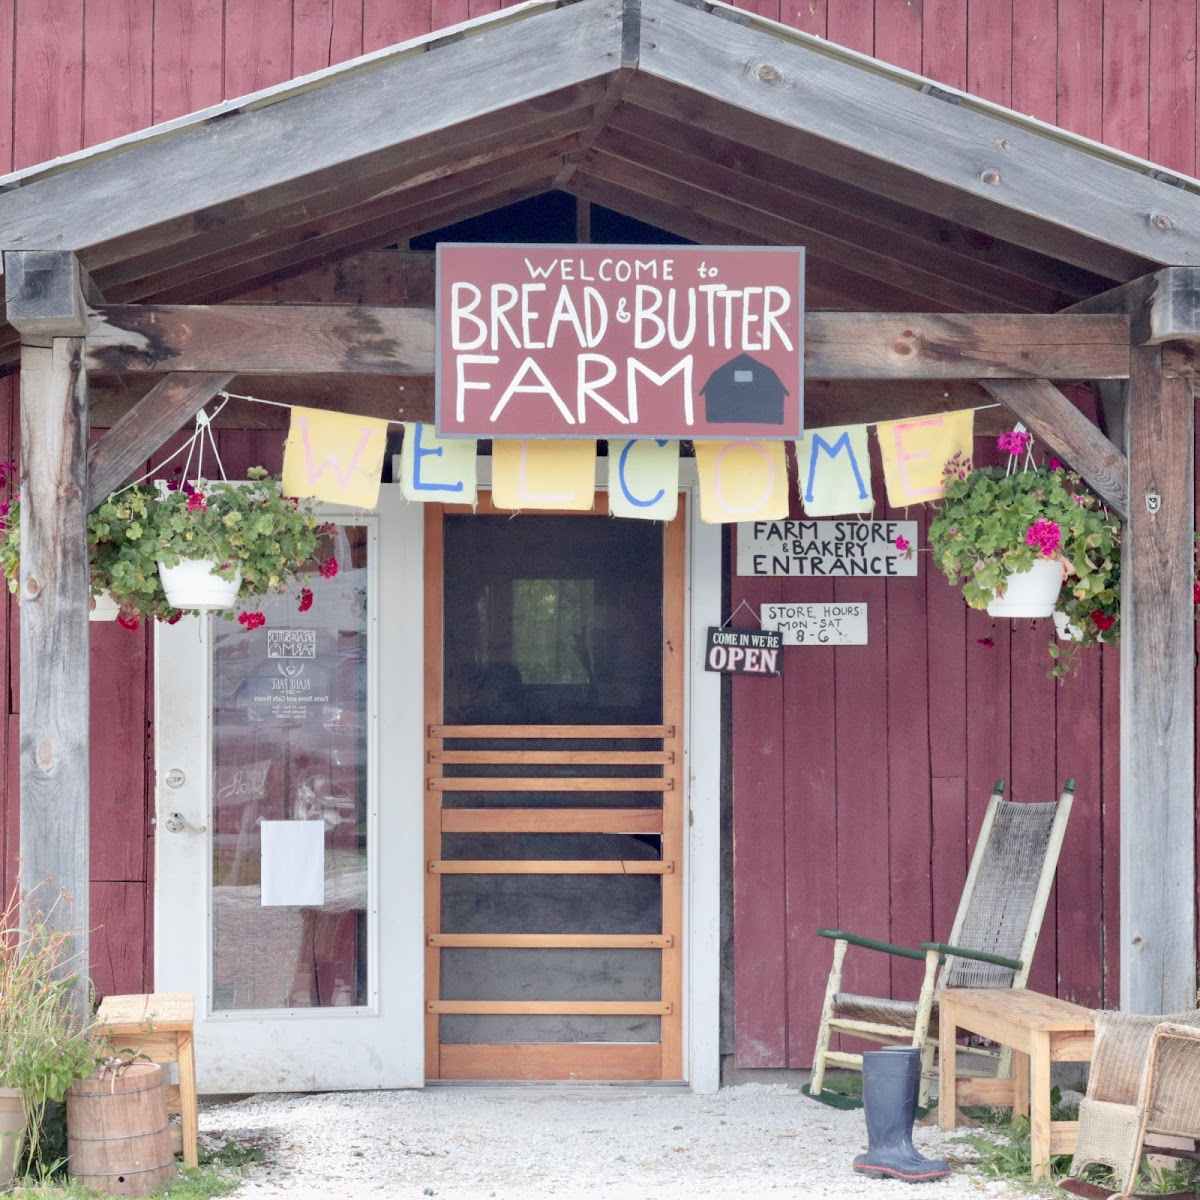 Gluten-Free at Blank Page Cafe @ Bread & Butter Farm